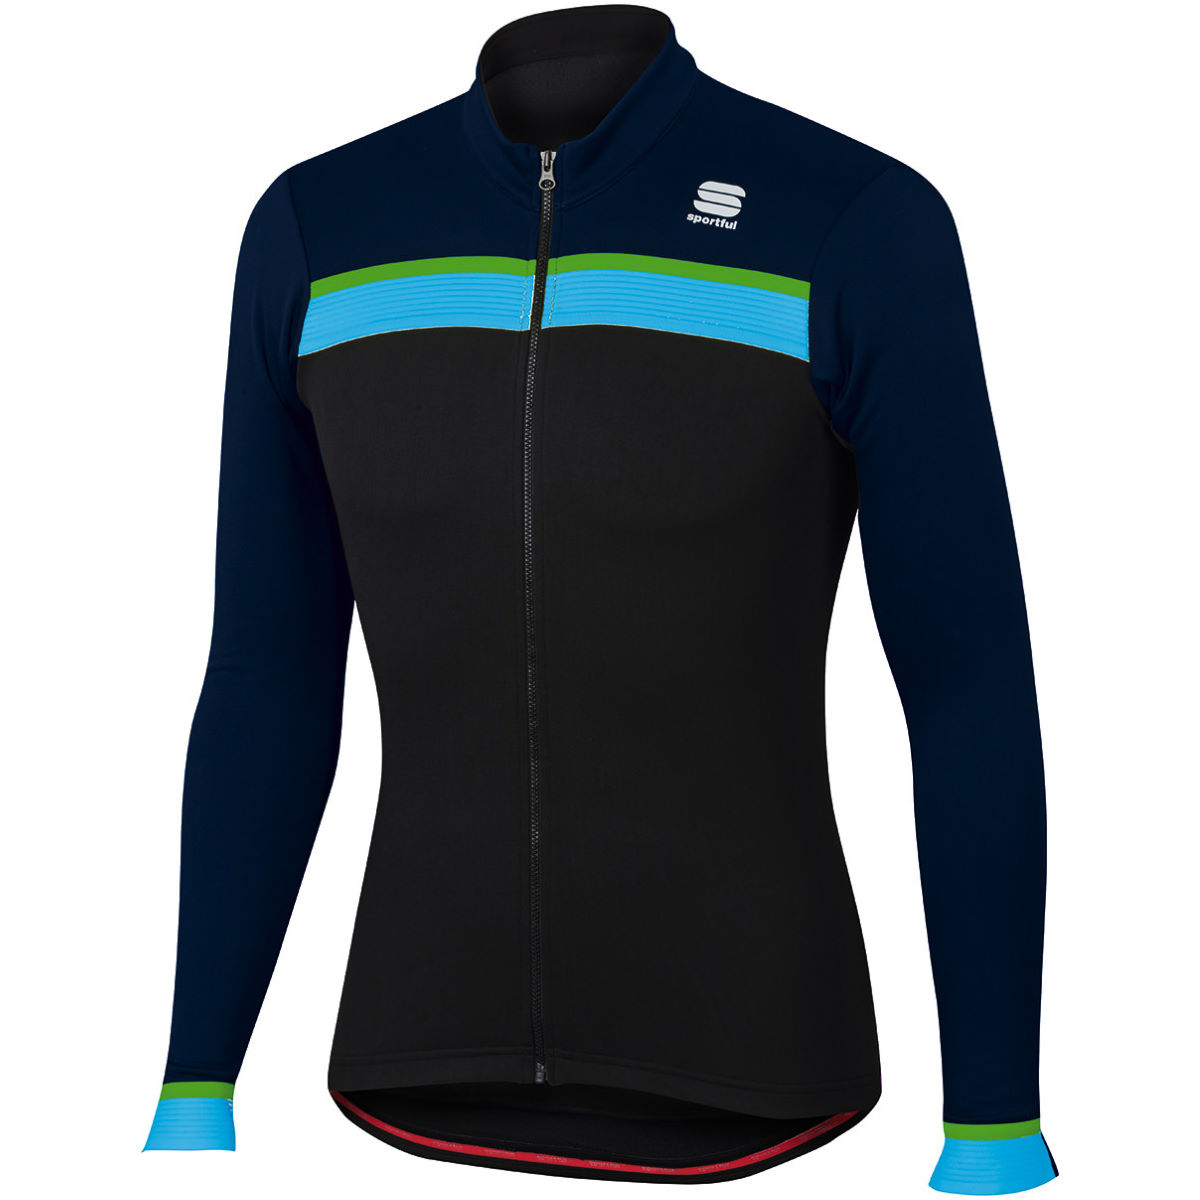 Maillot Sportful Pista Thermal (manches longues) - L Maillots